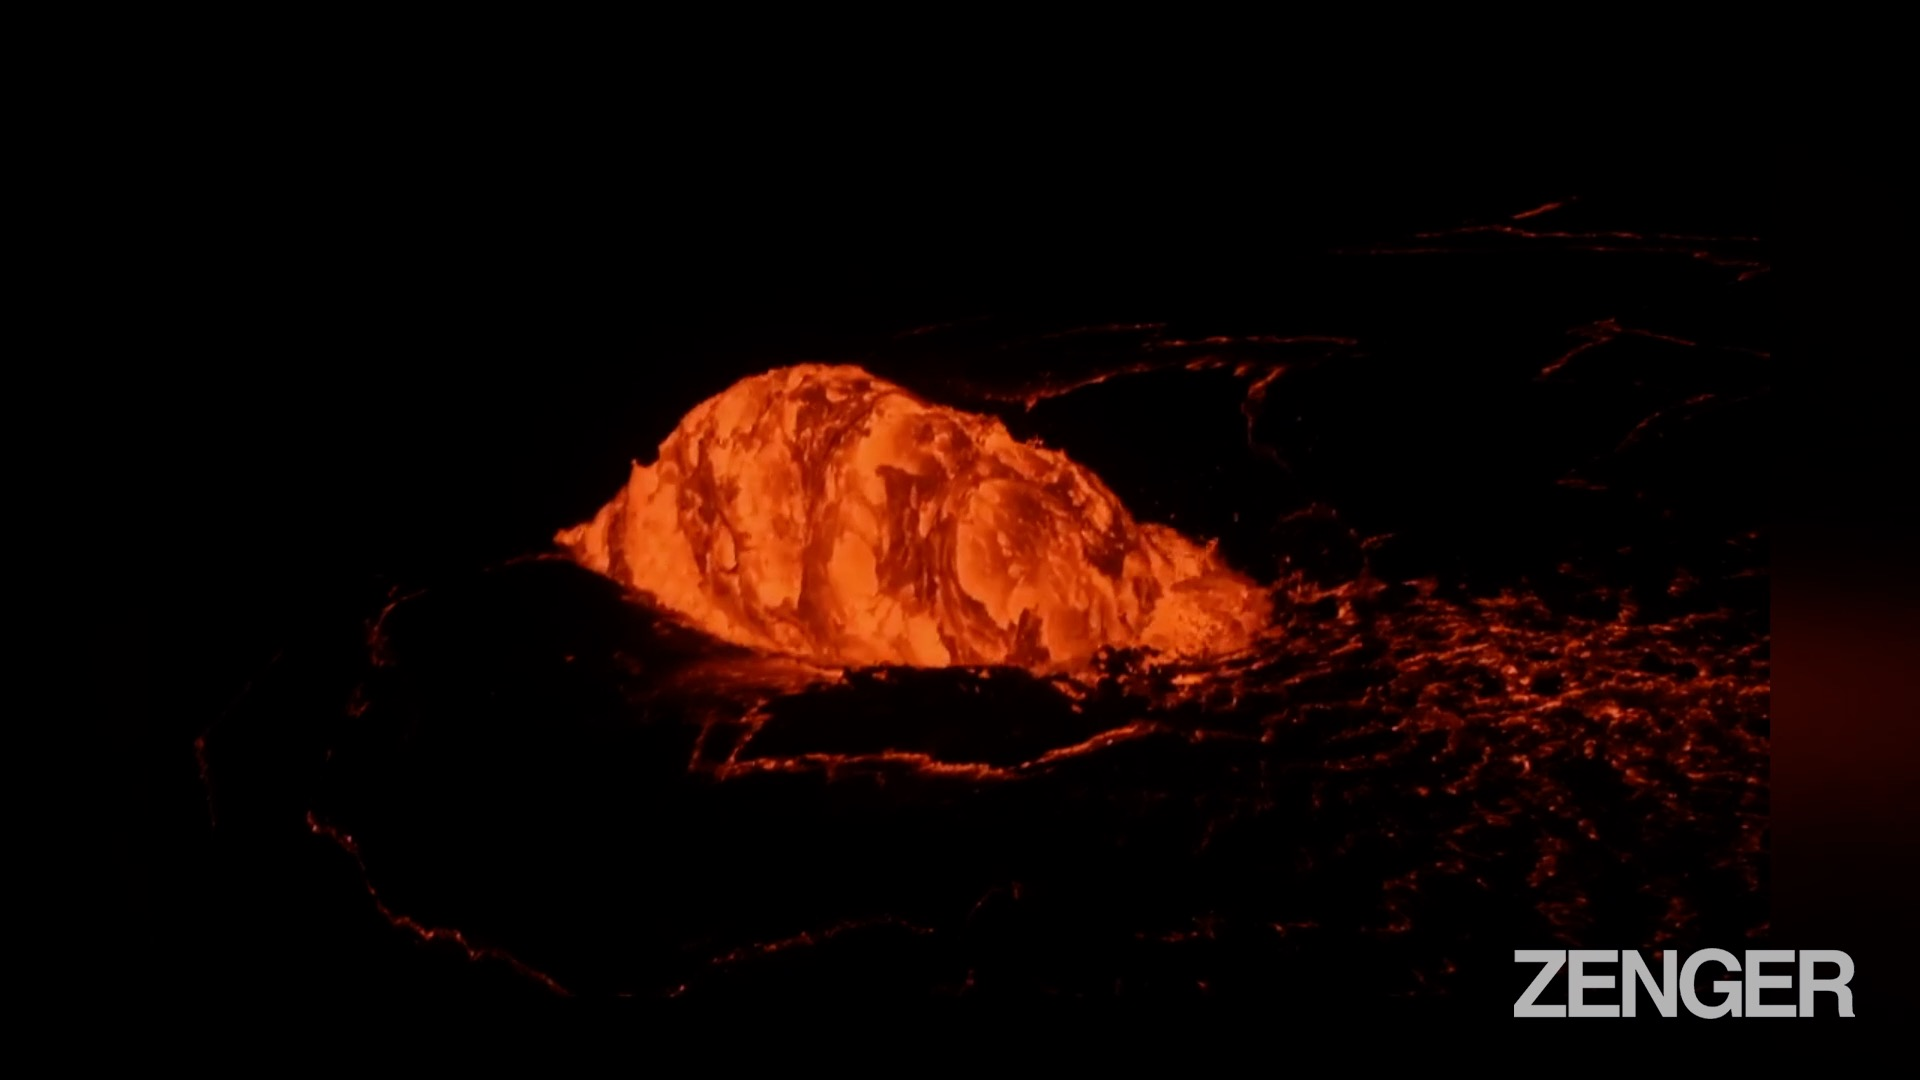 VIDEO: Lava Land: Huge Dome of Molten Lava From Hawaiian Volcano